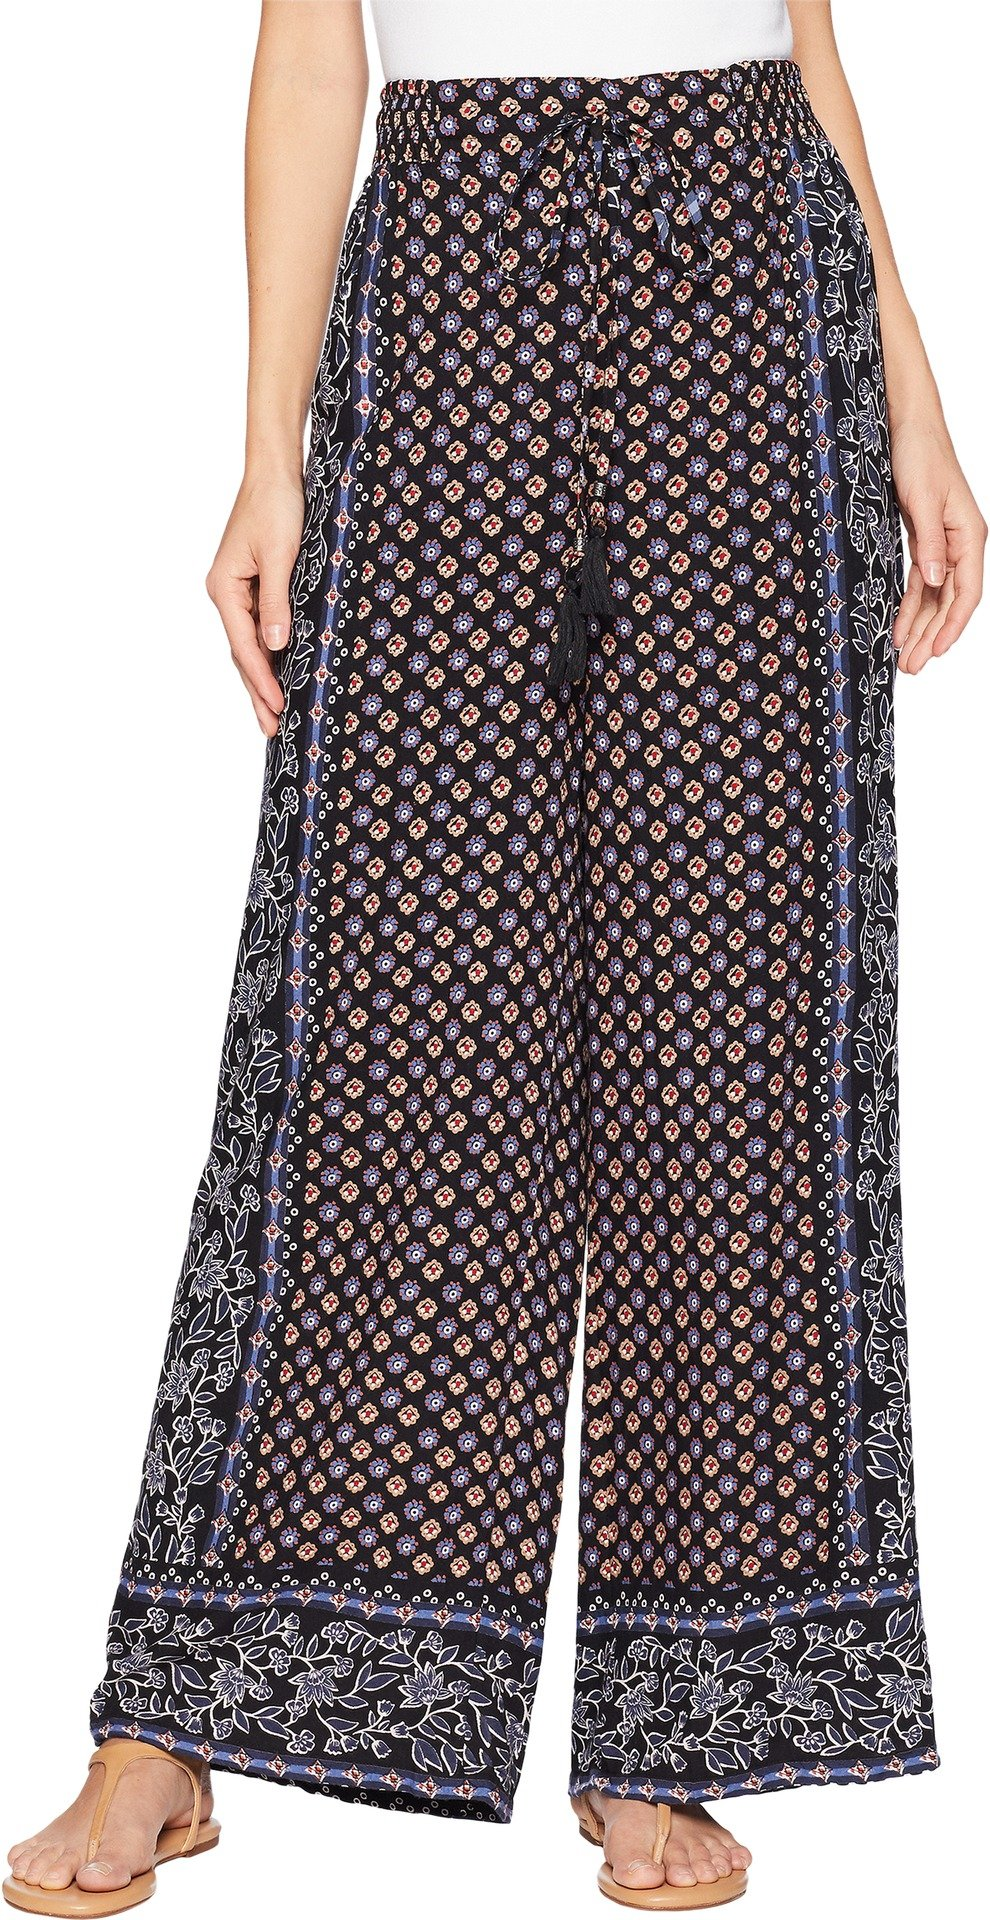 Angie Women's Printed Pants Black Small 29.5